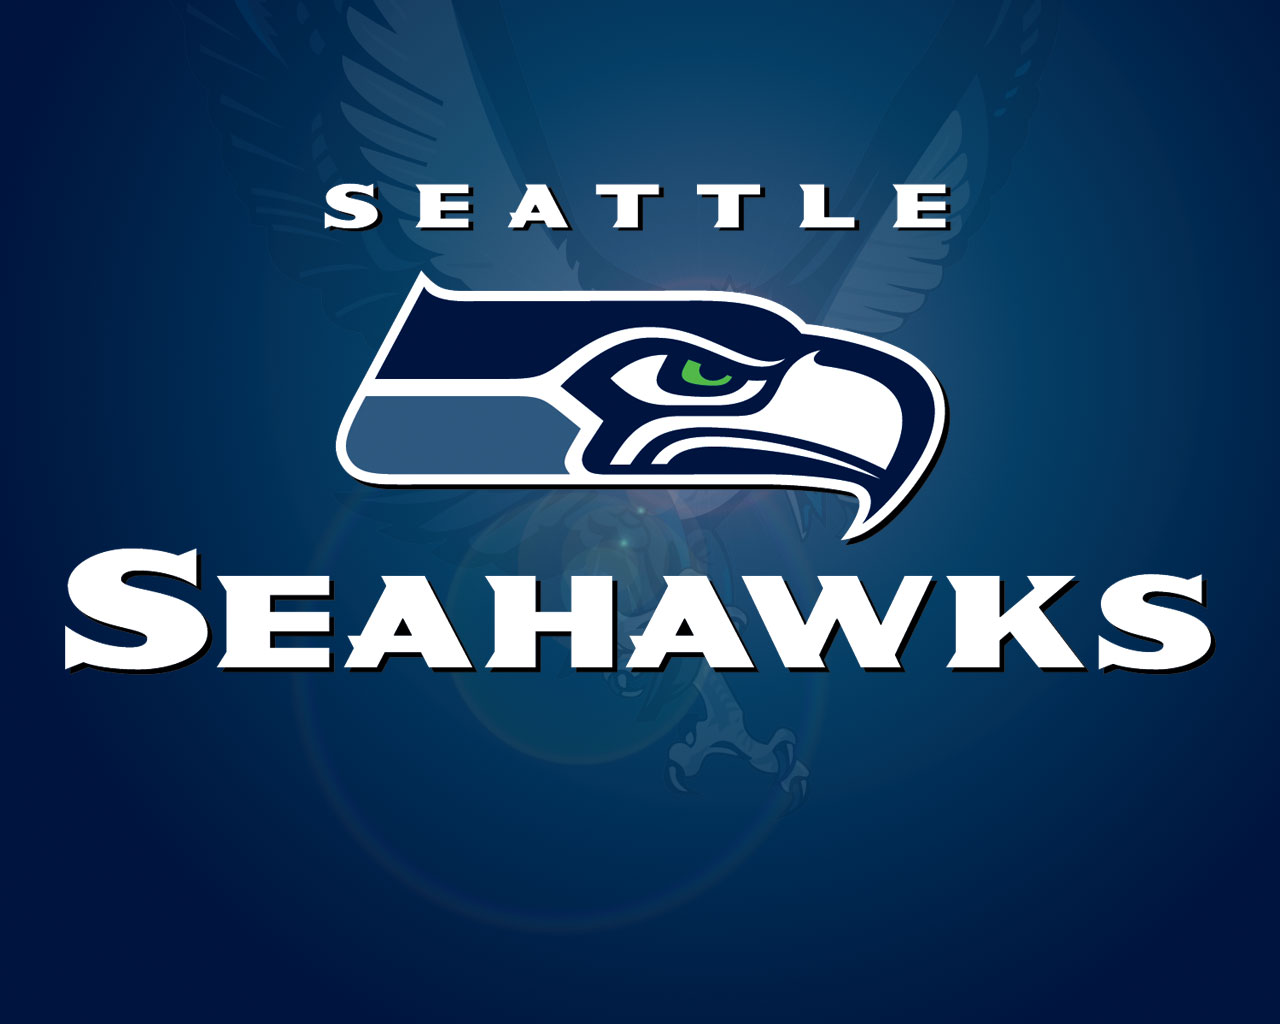 [NFL] Super Bowl: Seattle Seahawks Preview